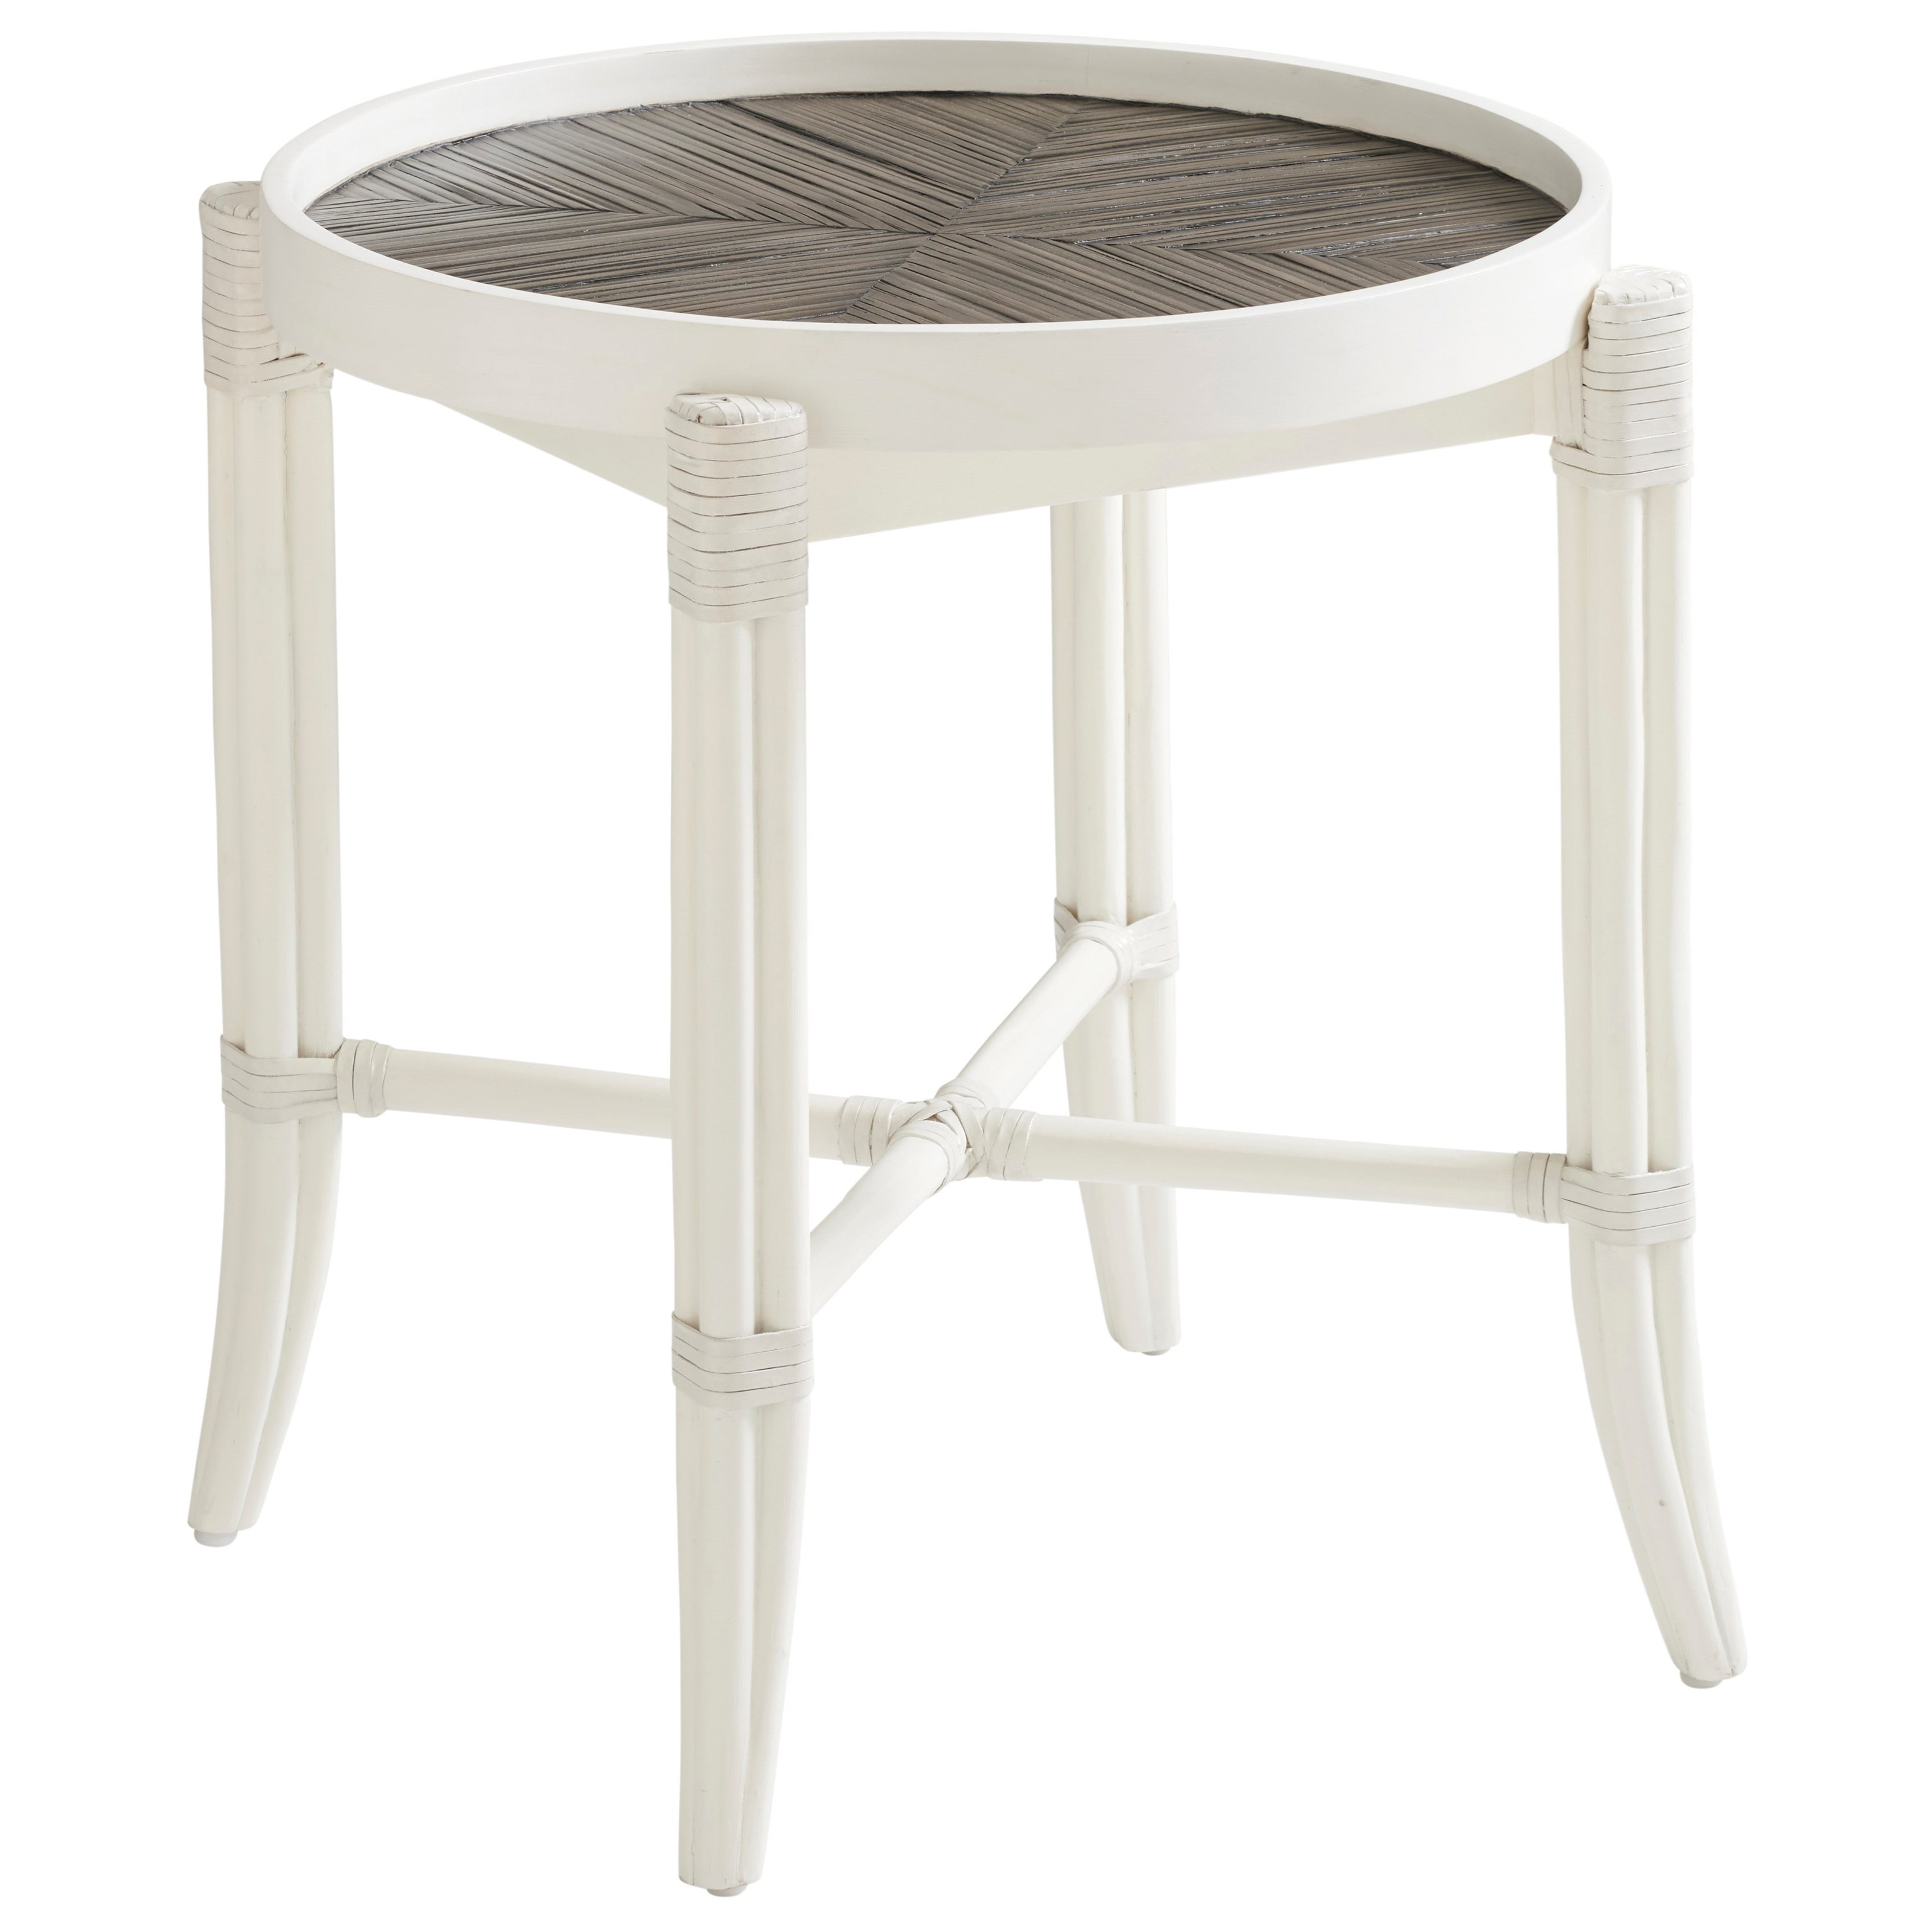 Ocean Breeze Neptune Round End Table by Tommy Bahama Home at Baer's Furniture